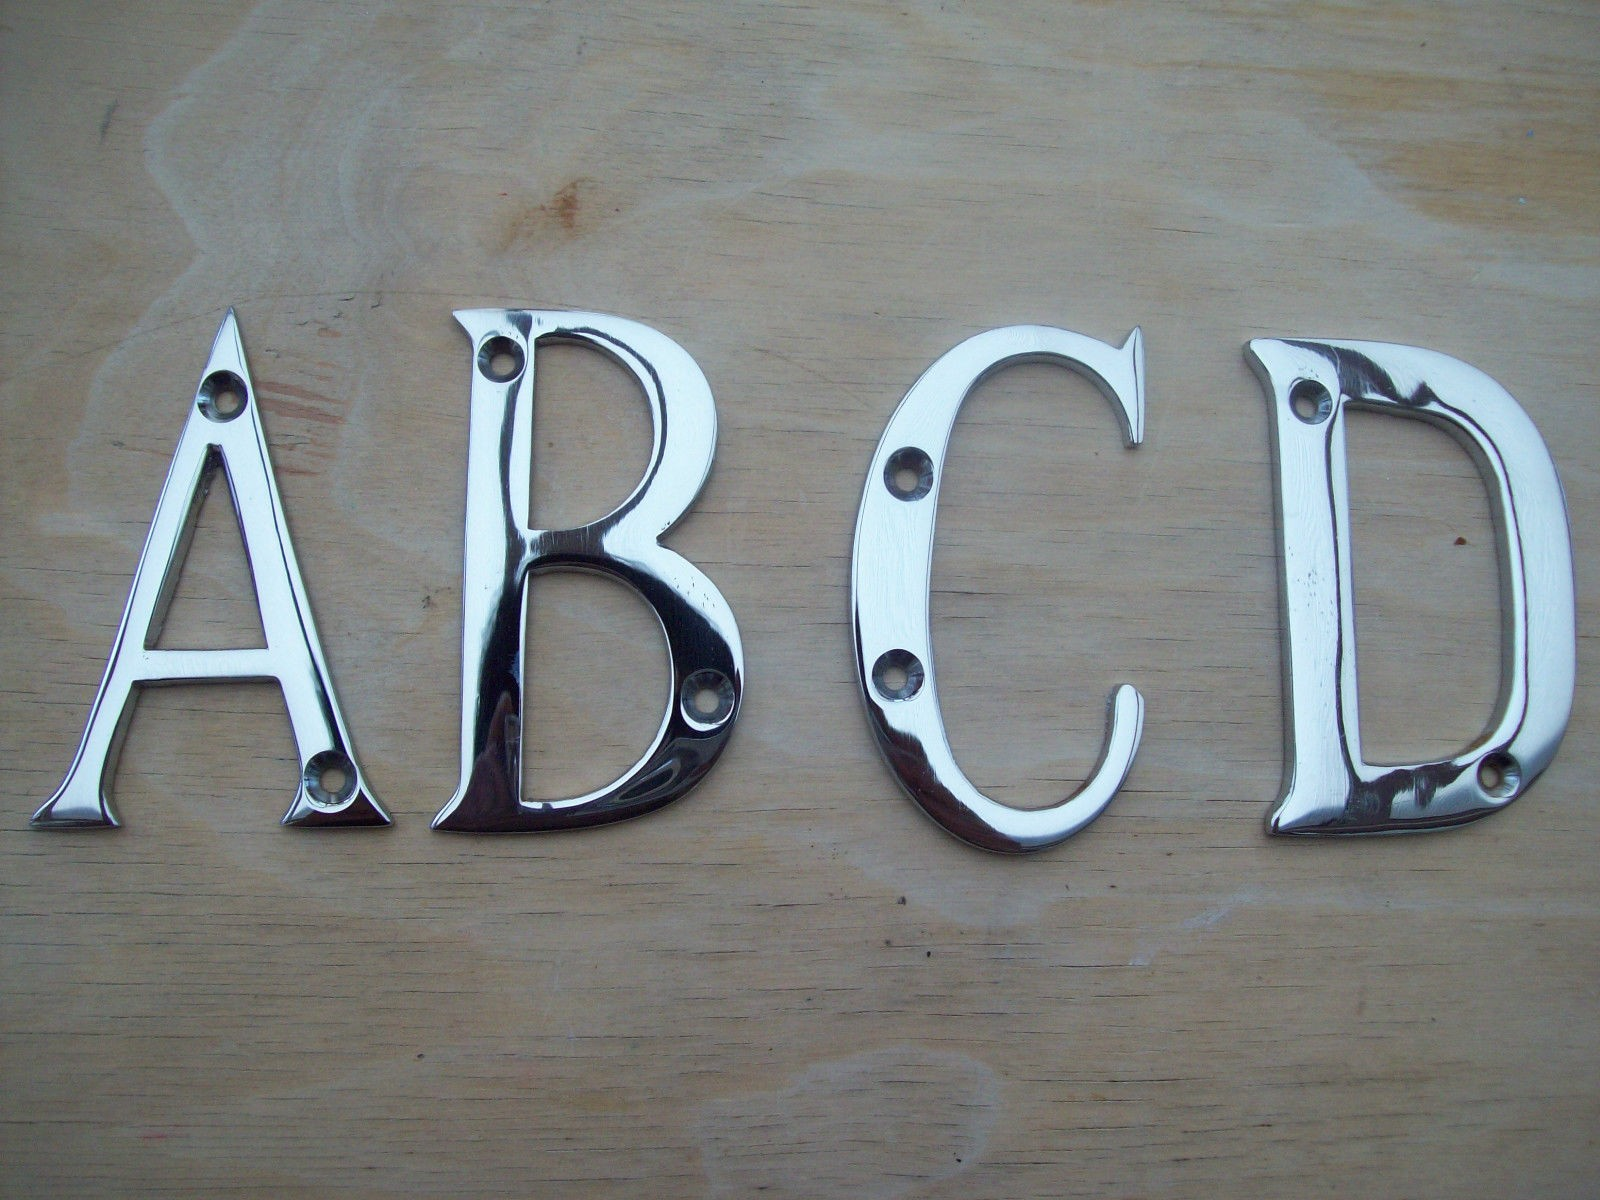 Chrome Plated Door Letters Ironmongery World